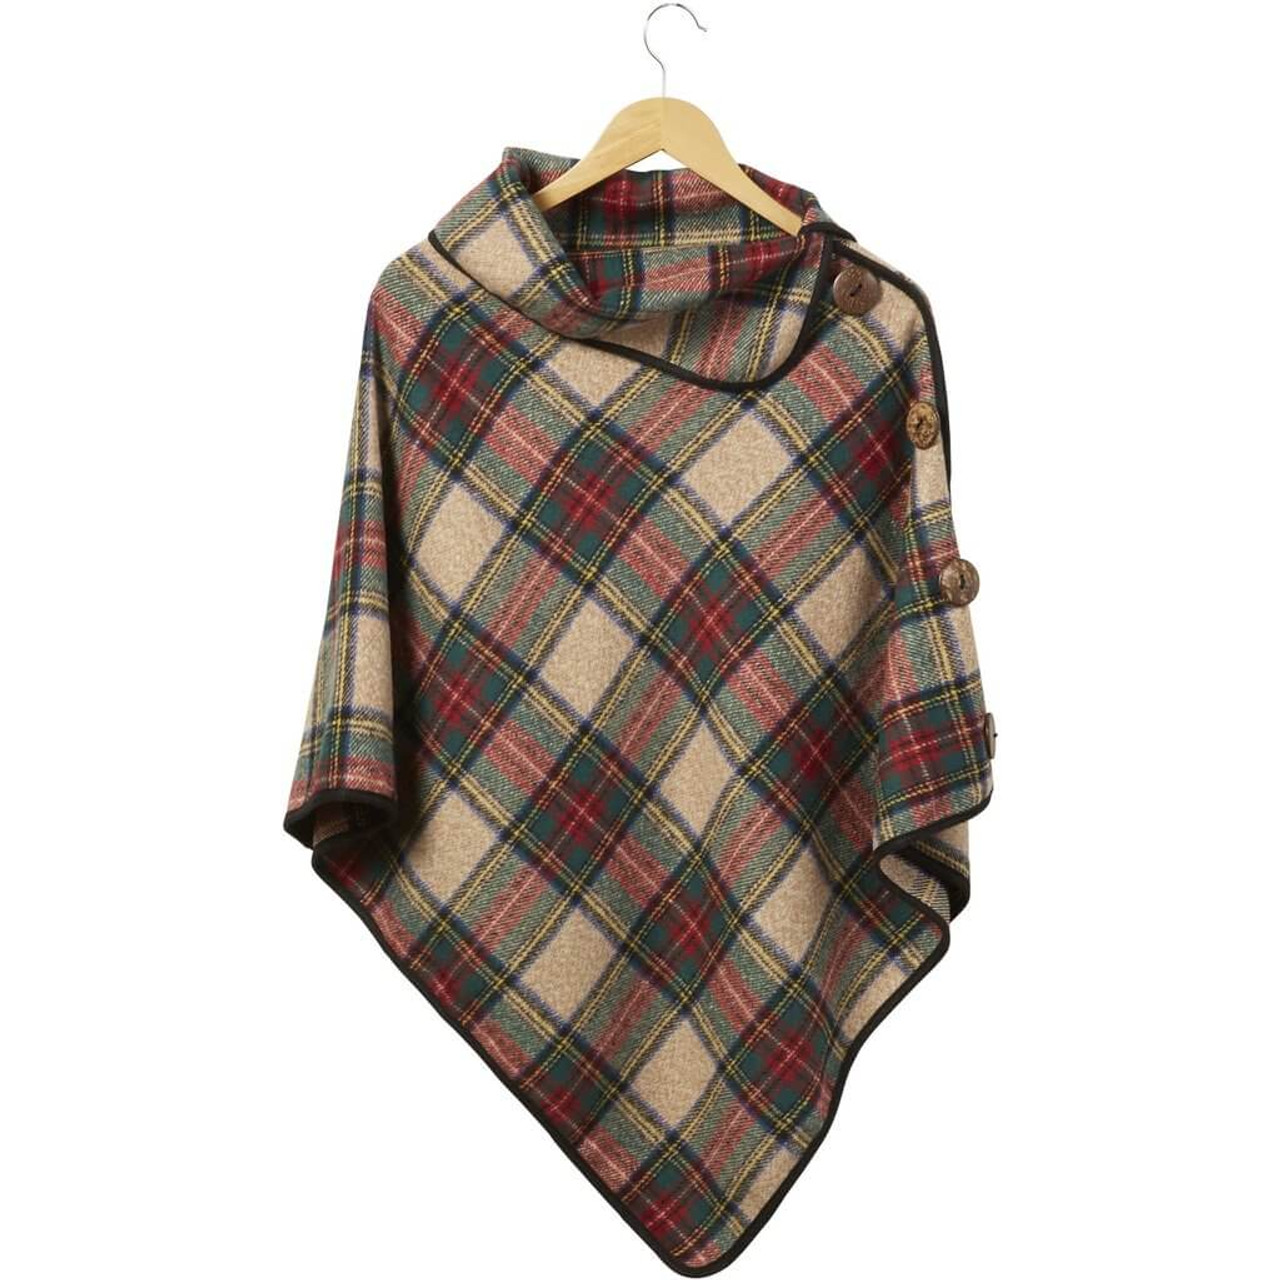 This adorable button plaid Patric spiced wine poncho is perfect for pumpkin picking and sipping hot apple cider this fall. One size fits most.